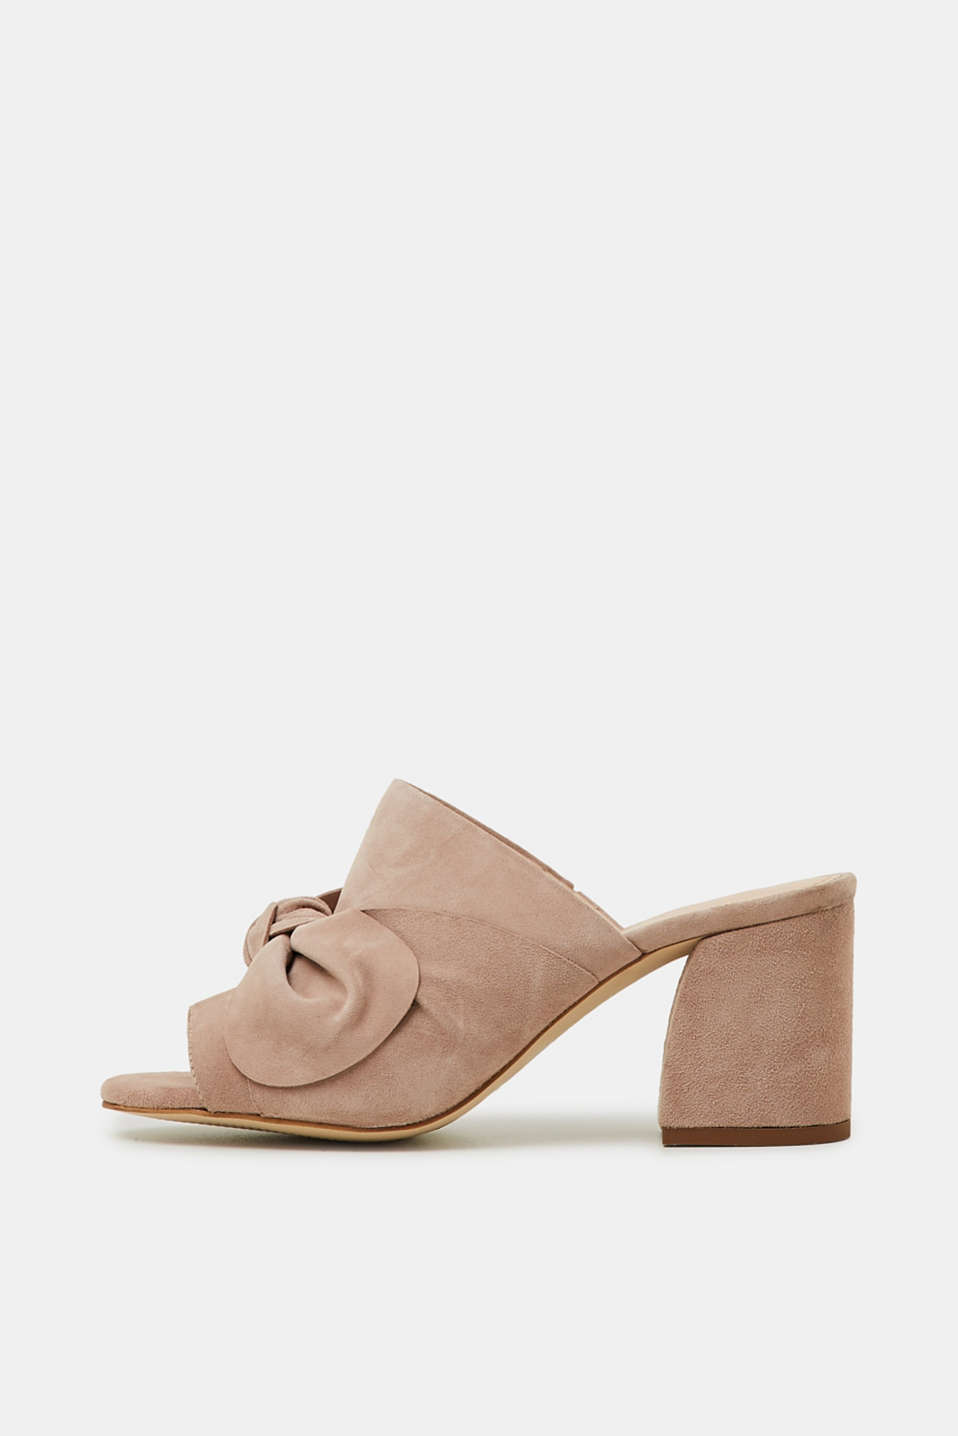 Esprit - Leather mules with a bow